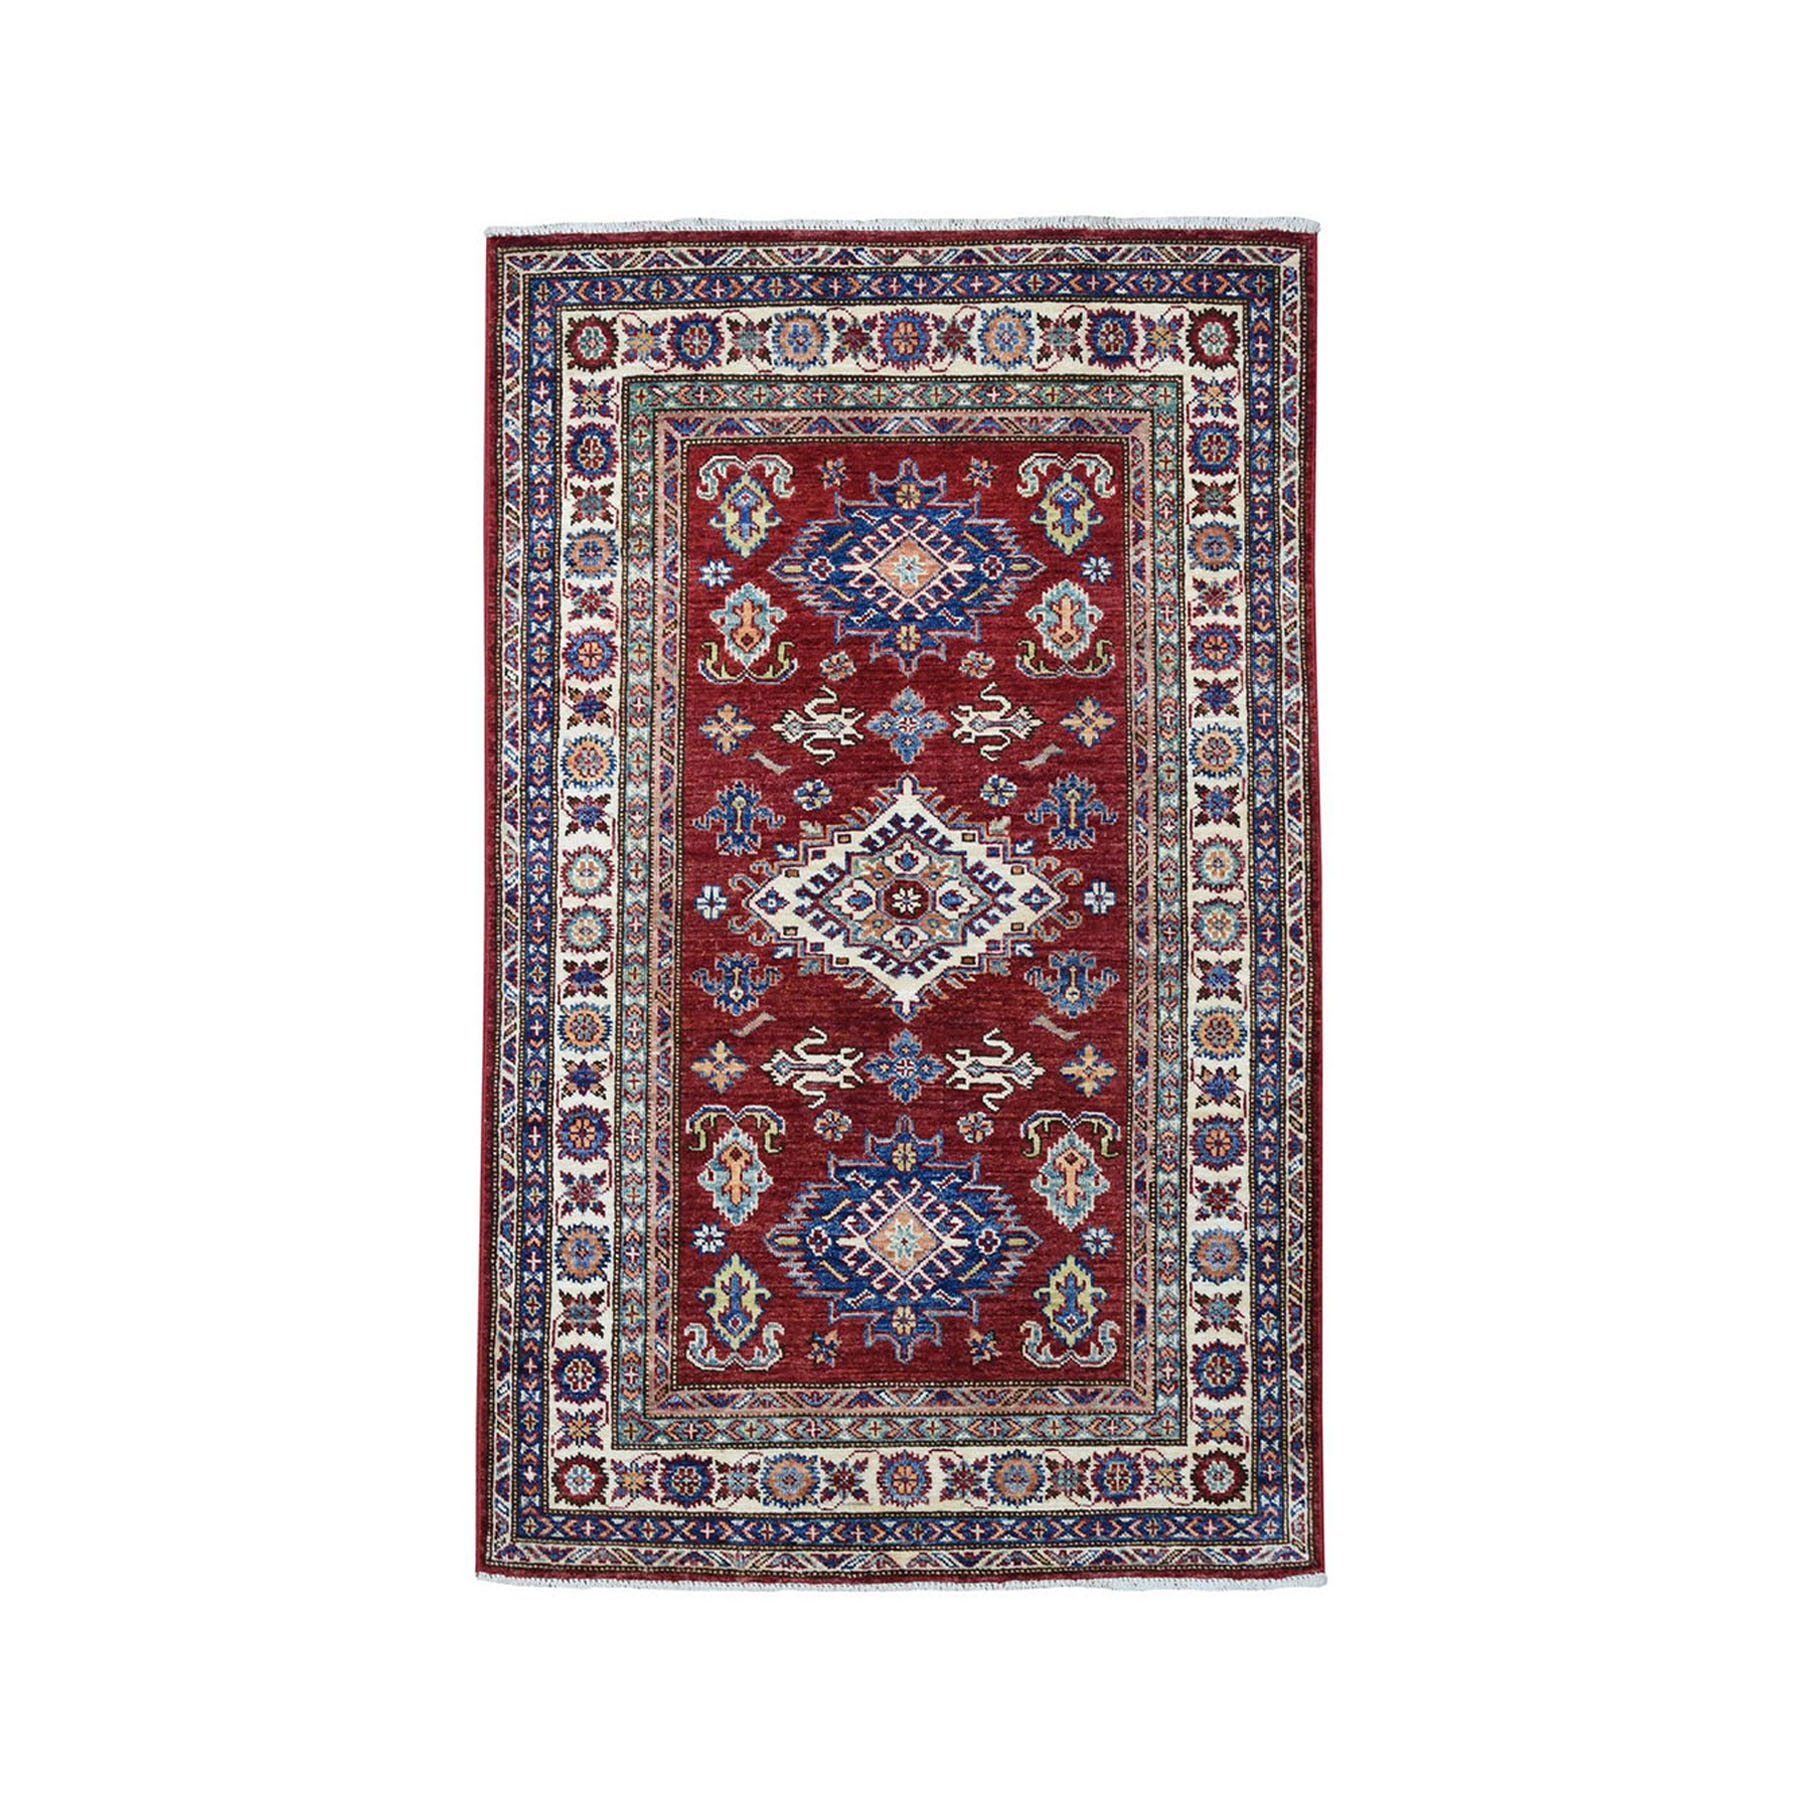 "3'3""X5'1"" Red Super Kazak Pure Wool Geometric Design Hand-Knotted Oriental Rug moae0980"